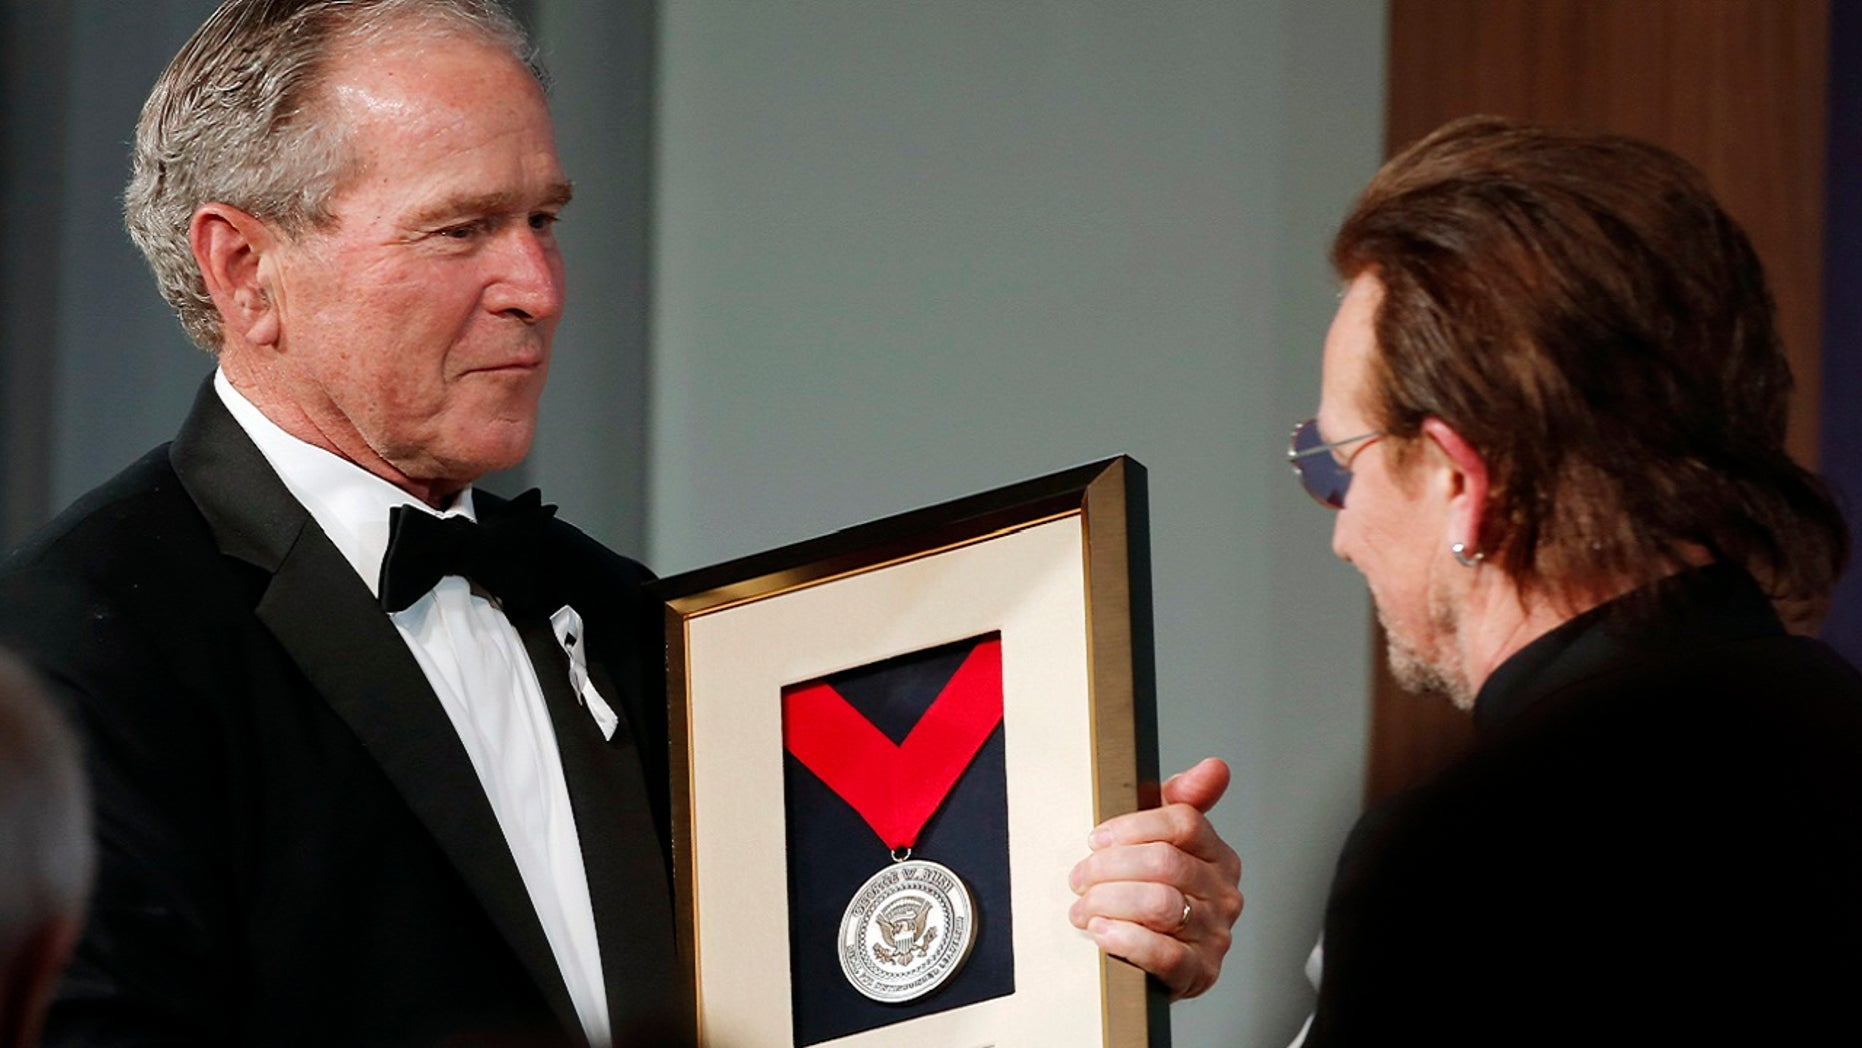 Former President George W. Bush, left, presents a medal of Distinguished Leadership to U2 musician Bono during a gala for the Forum on Leadership at the George W. Bush Institute, Thursday, April 19, 2018, in Dallas.